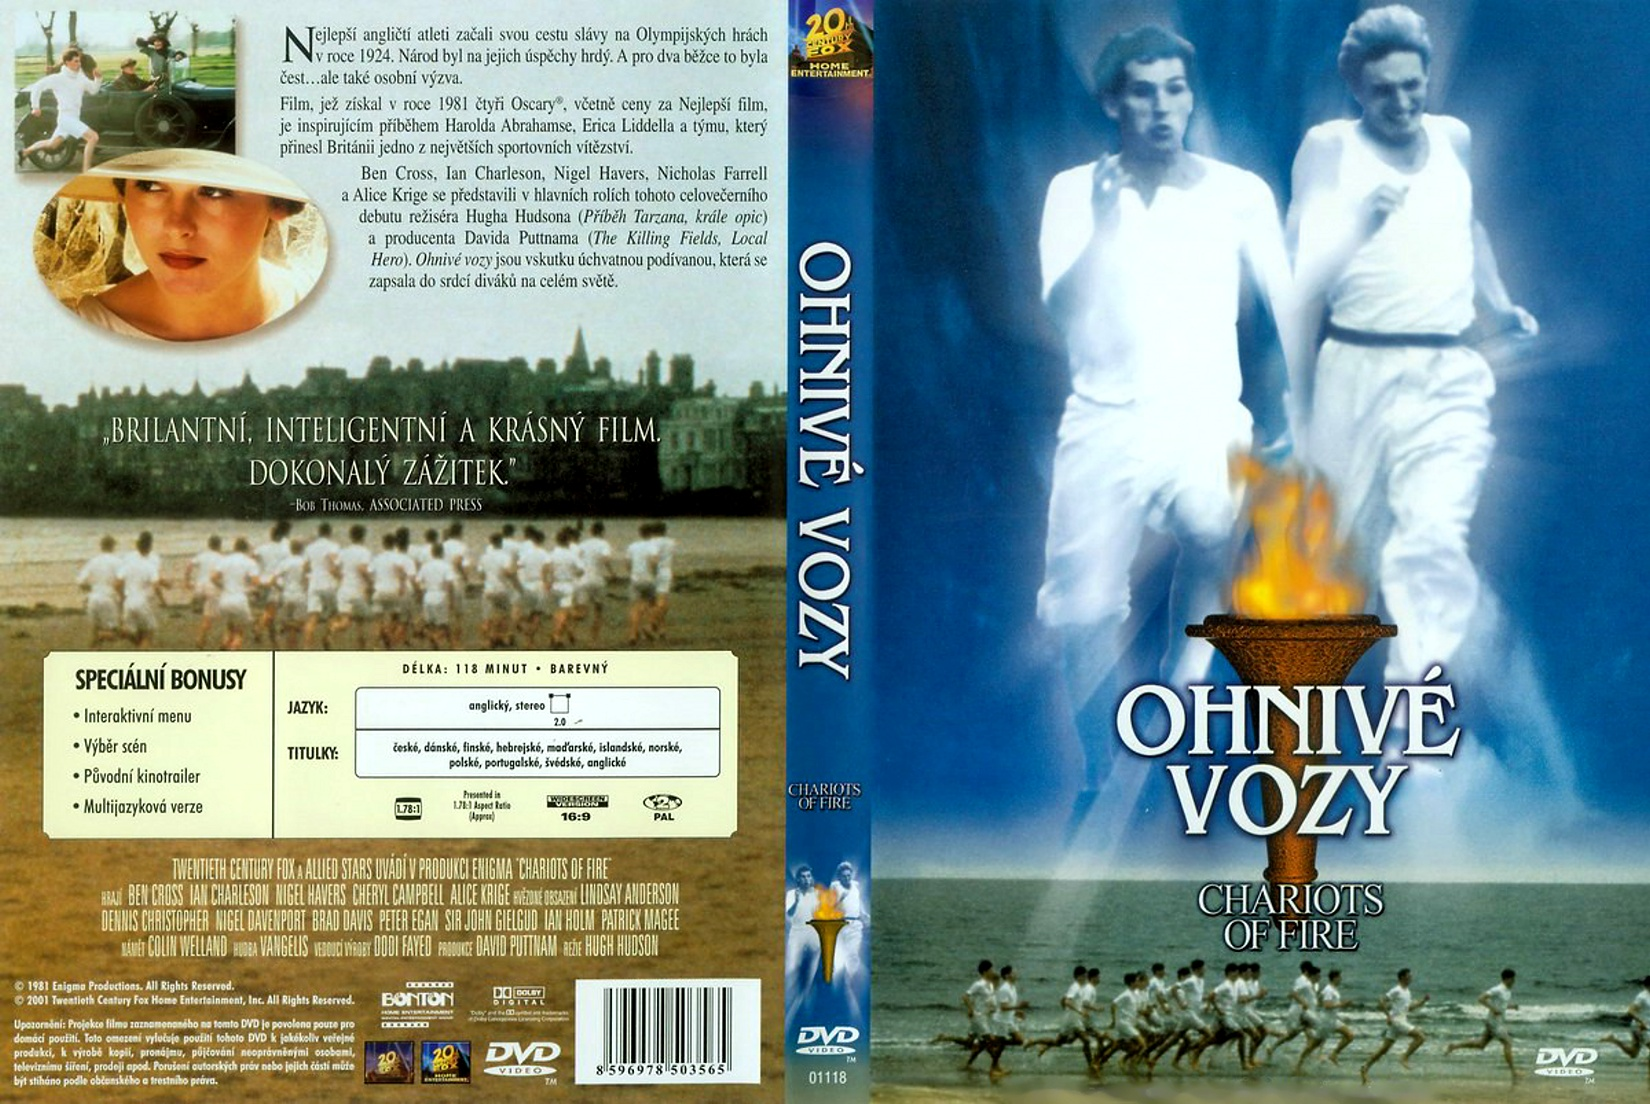 Chariots of fire the movie